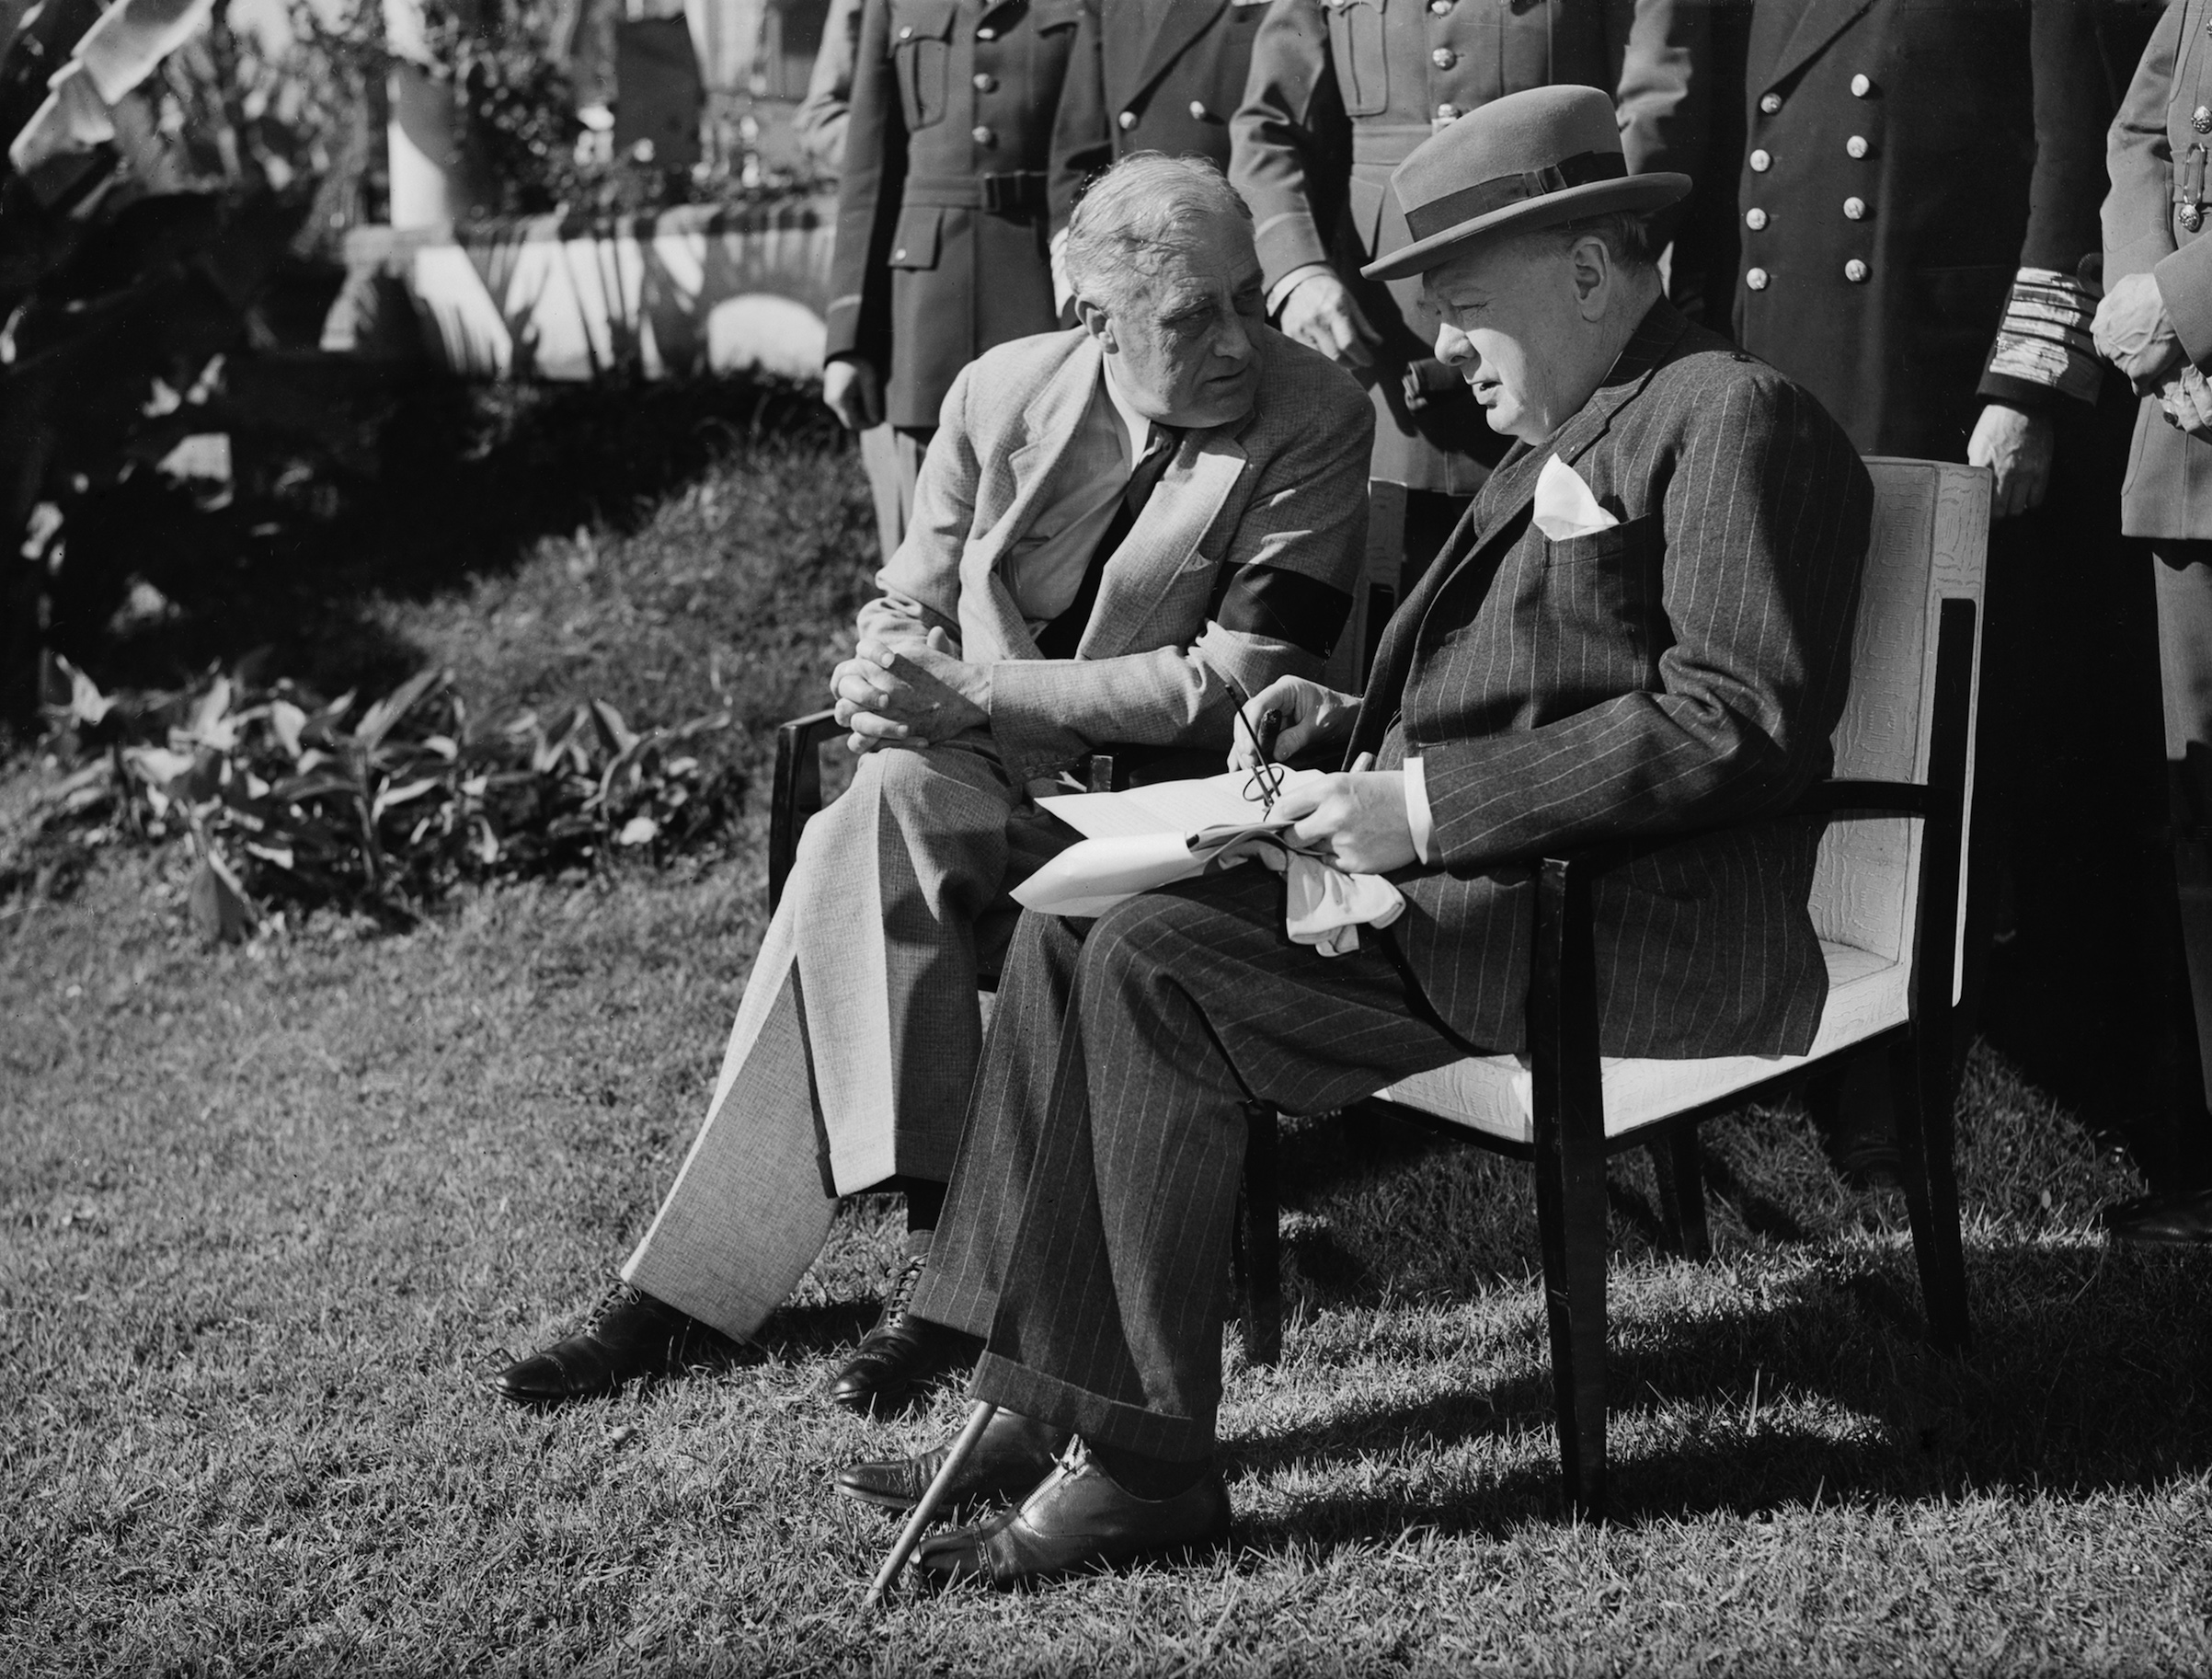 President Roosevelt and Prime Minister Churchill at the Allied Conference In Casablanca, January 1943.